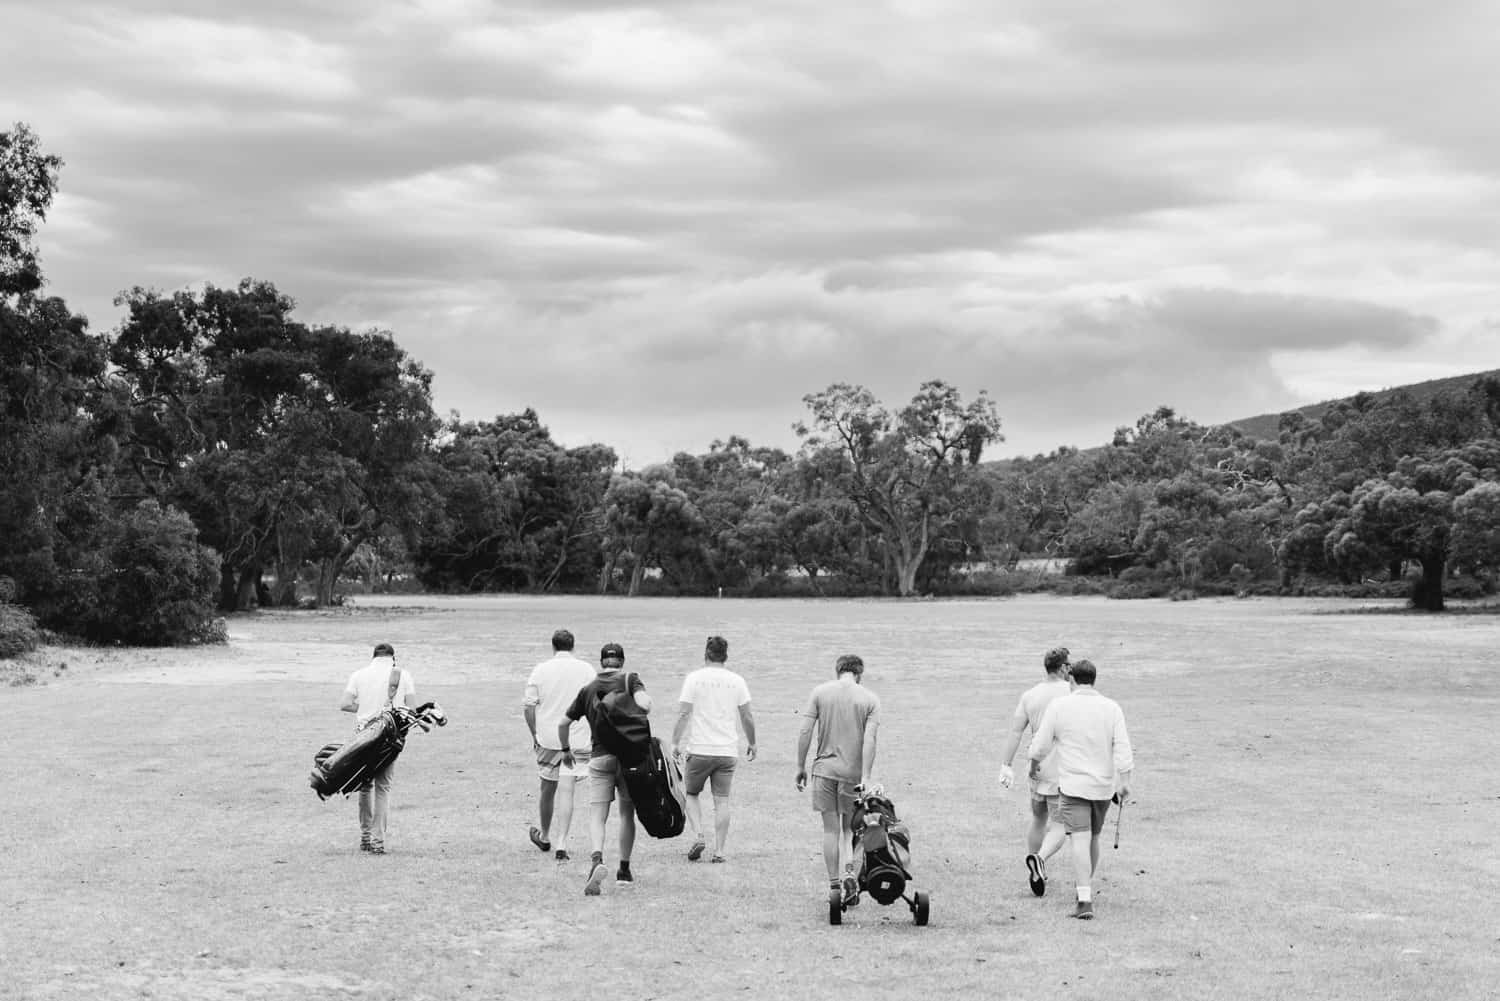 Groomsmen playing golf at Dunkeld golf club